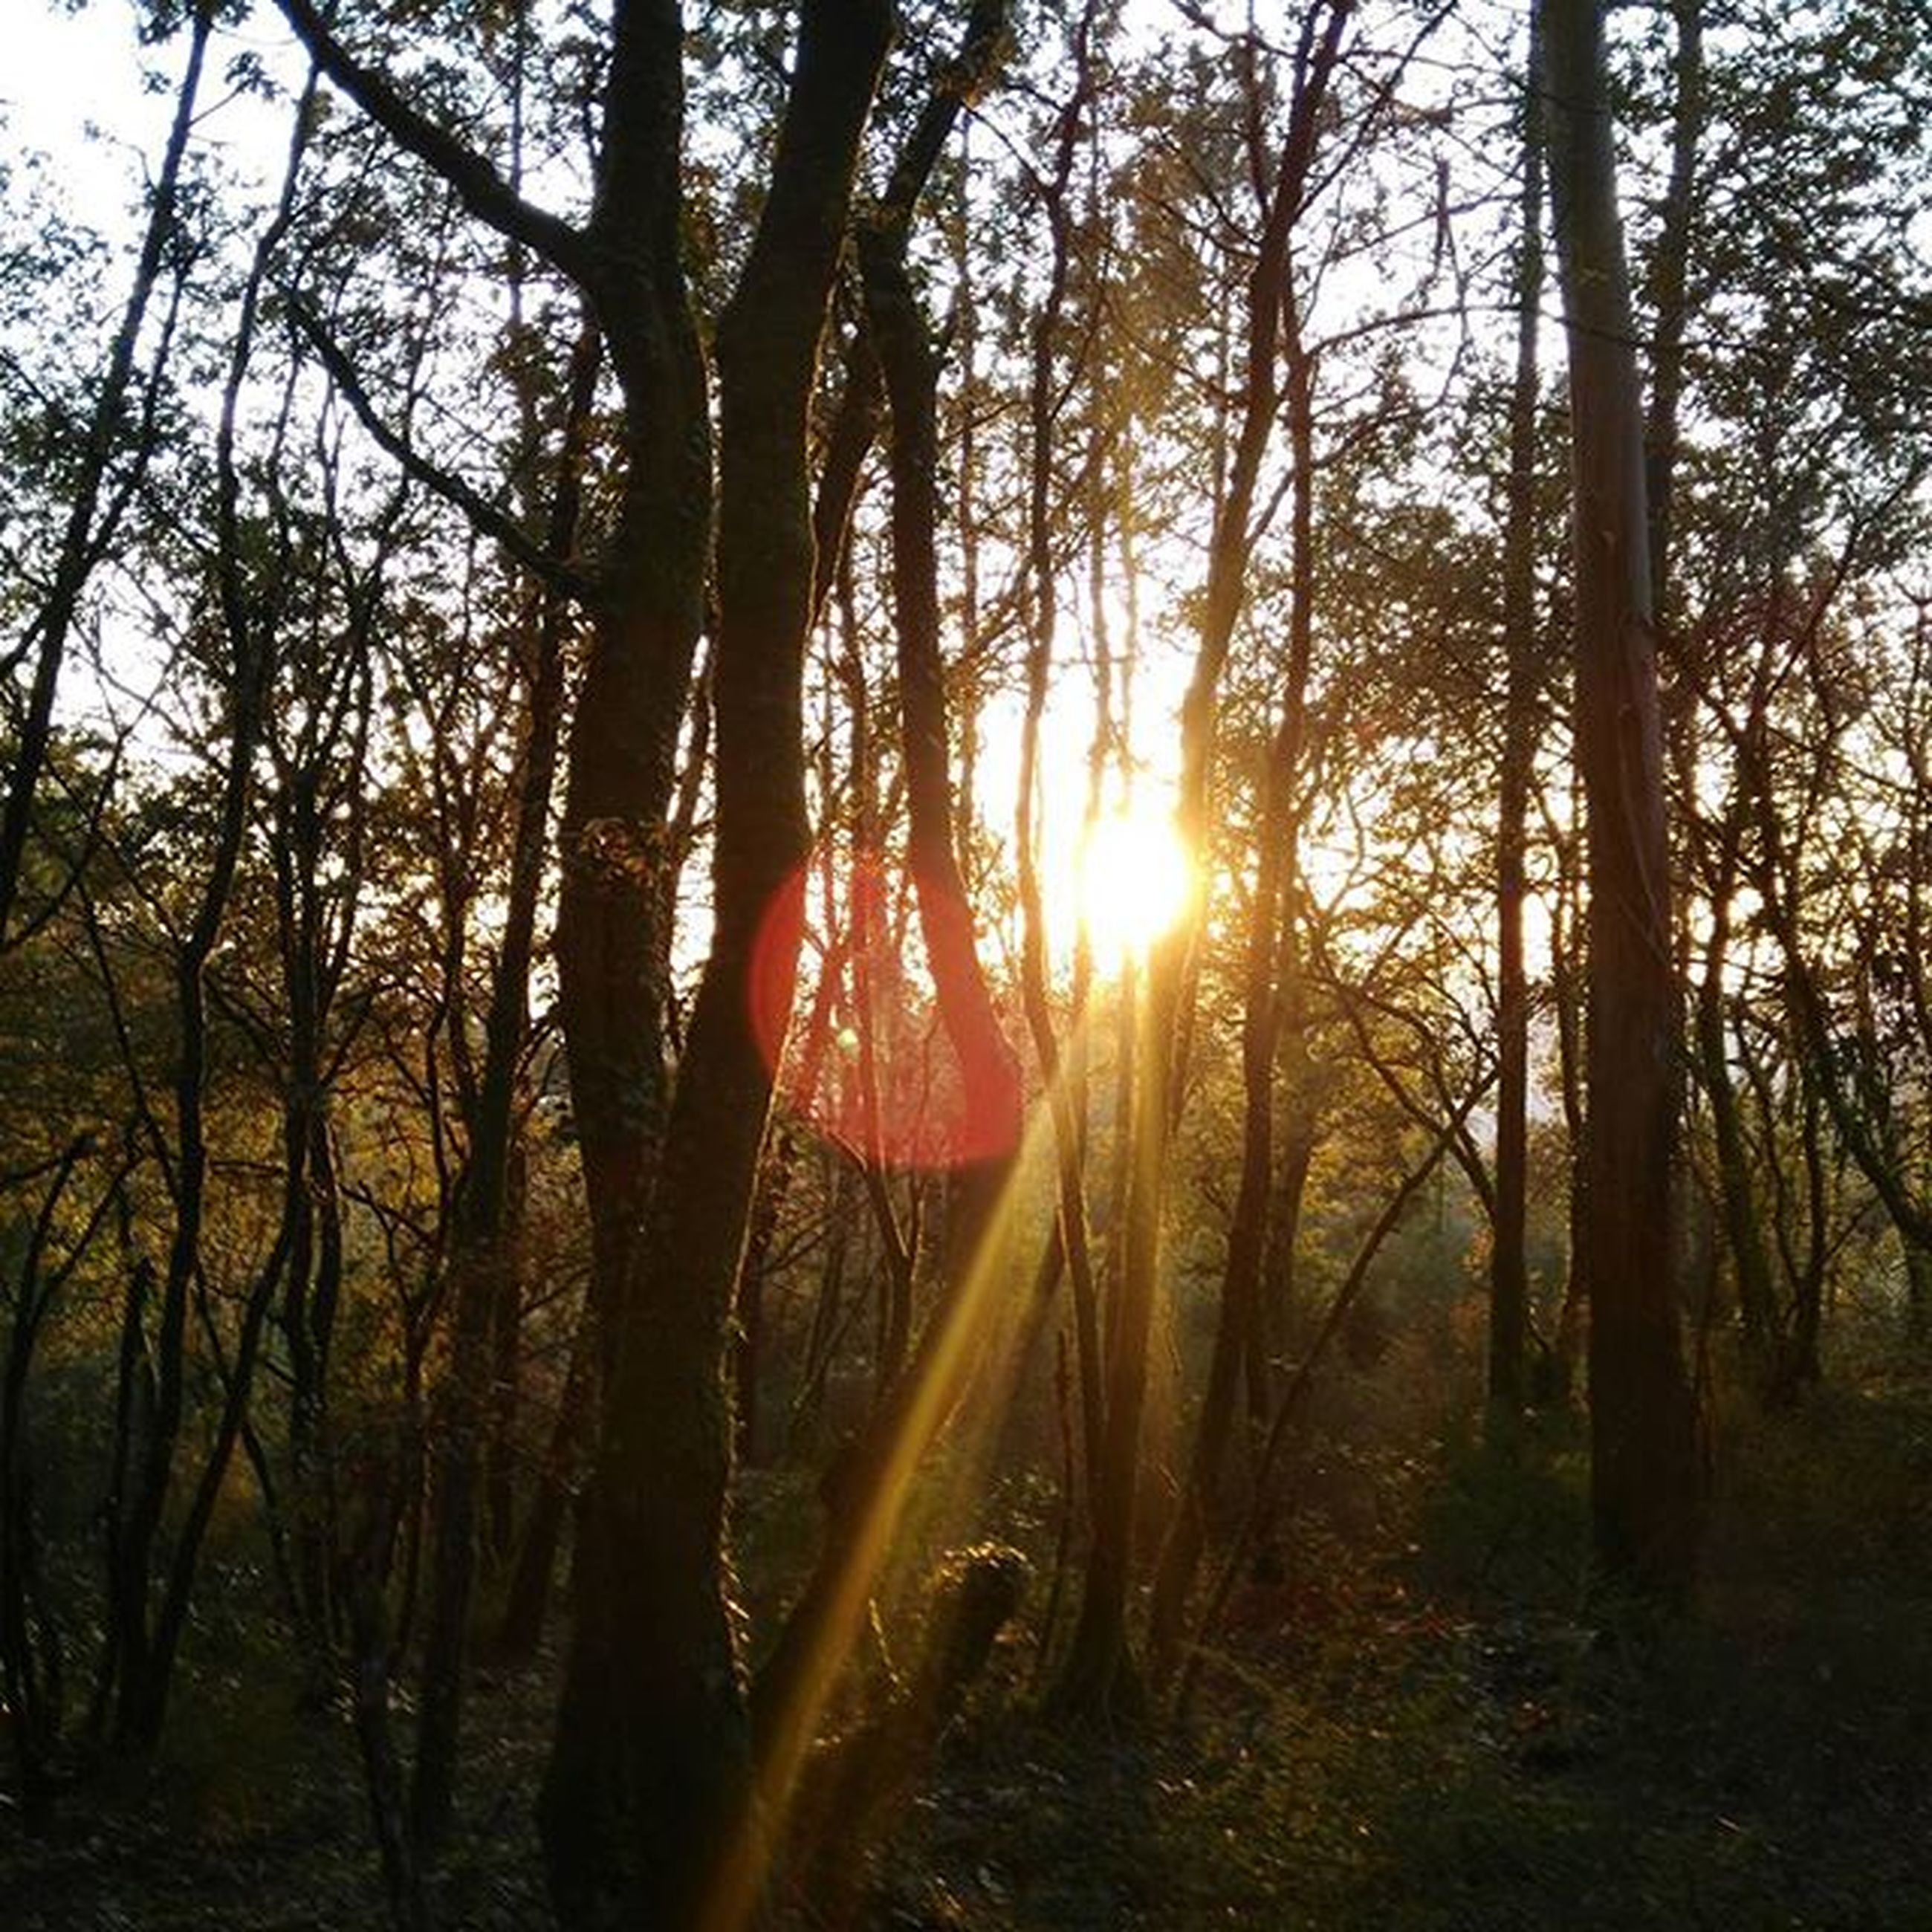 sun, tree, tranquility, sunset, tranquil scene, sunlight, sunbeam, tree trunk, scenics, beauty in nature, nature, forest, lens flare, growth, woodland, landscape, back lit, silhouette, sky, non-urban scene